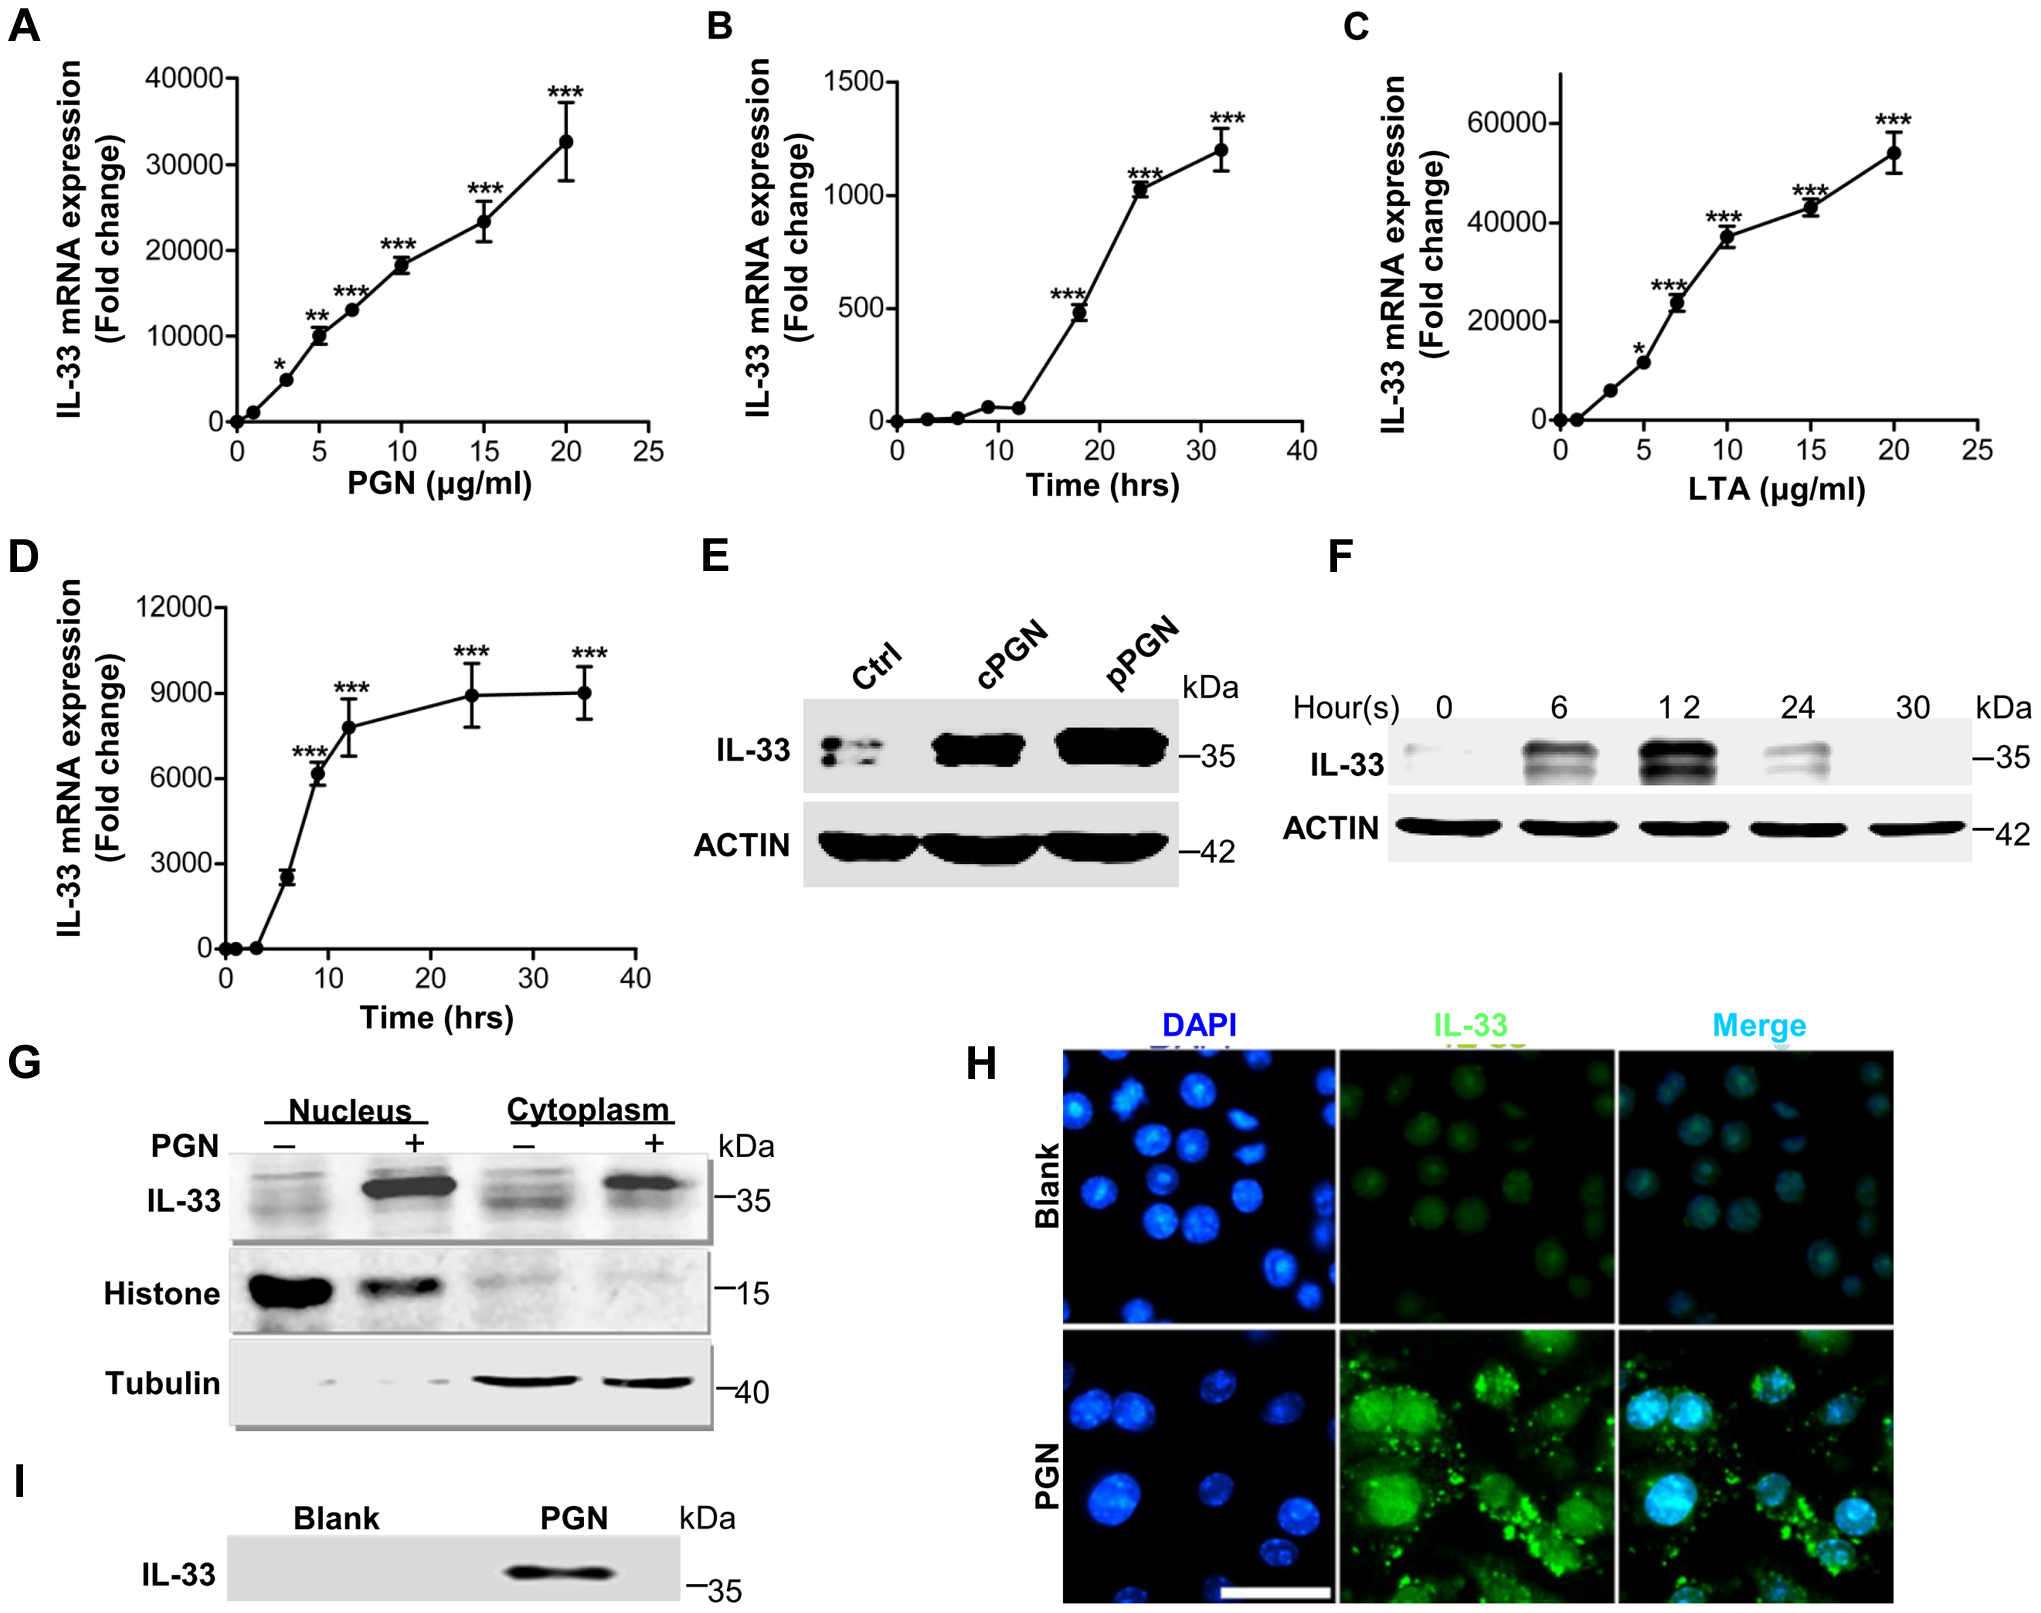 IL-33 expression induced by <i>S.aureus</i>-derived PGN and LTA in macrophages.